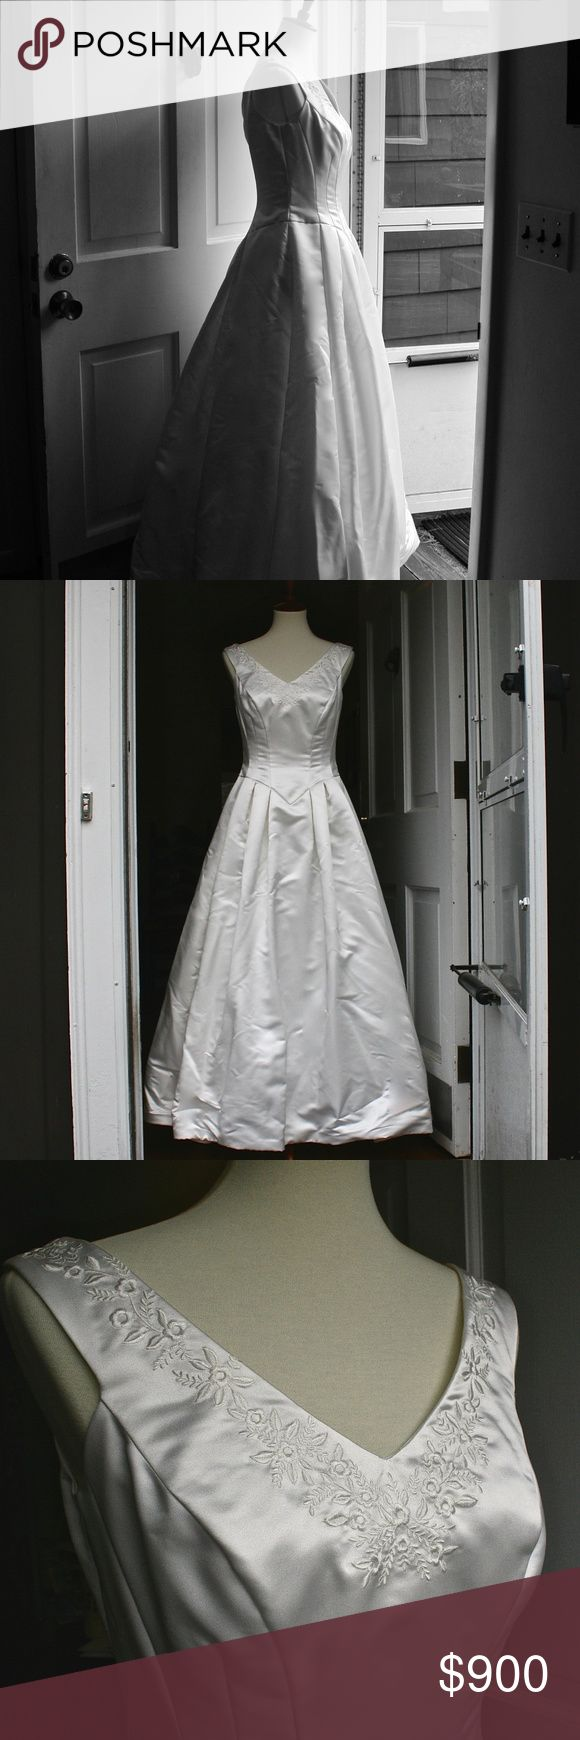 90's Vintage Wedding Dress Satin Size 8 Gorgeous satin wedding gown, approx. size 8.  Originally purchased in '97 or '98. It originally cost $1400. It has been stored in acid-free triple-layer boxes, in a temperature and humidity controlled environment.  It's in great condition, ready for a fairytale wedding! Has two layers of crinolines and a full lining/attached slip.  18 Buttons at back cover a hidden zipper, which has a hook closure at top. Bust Width: 17 inches Waist Width: 15 inches…